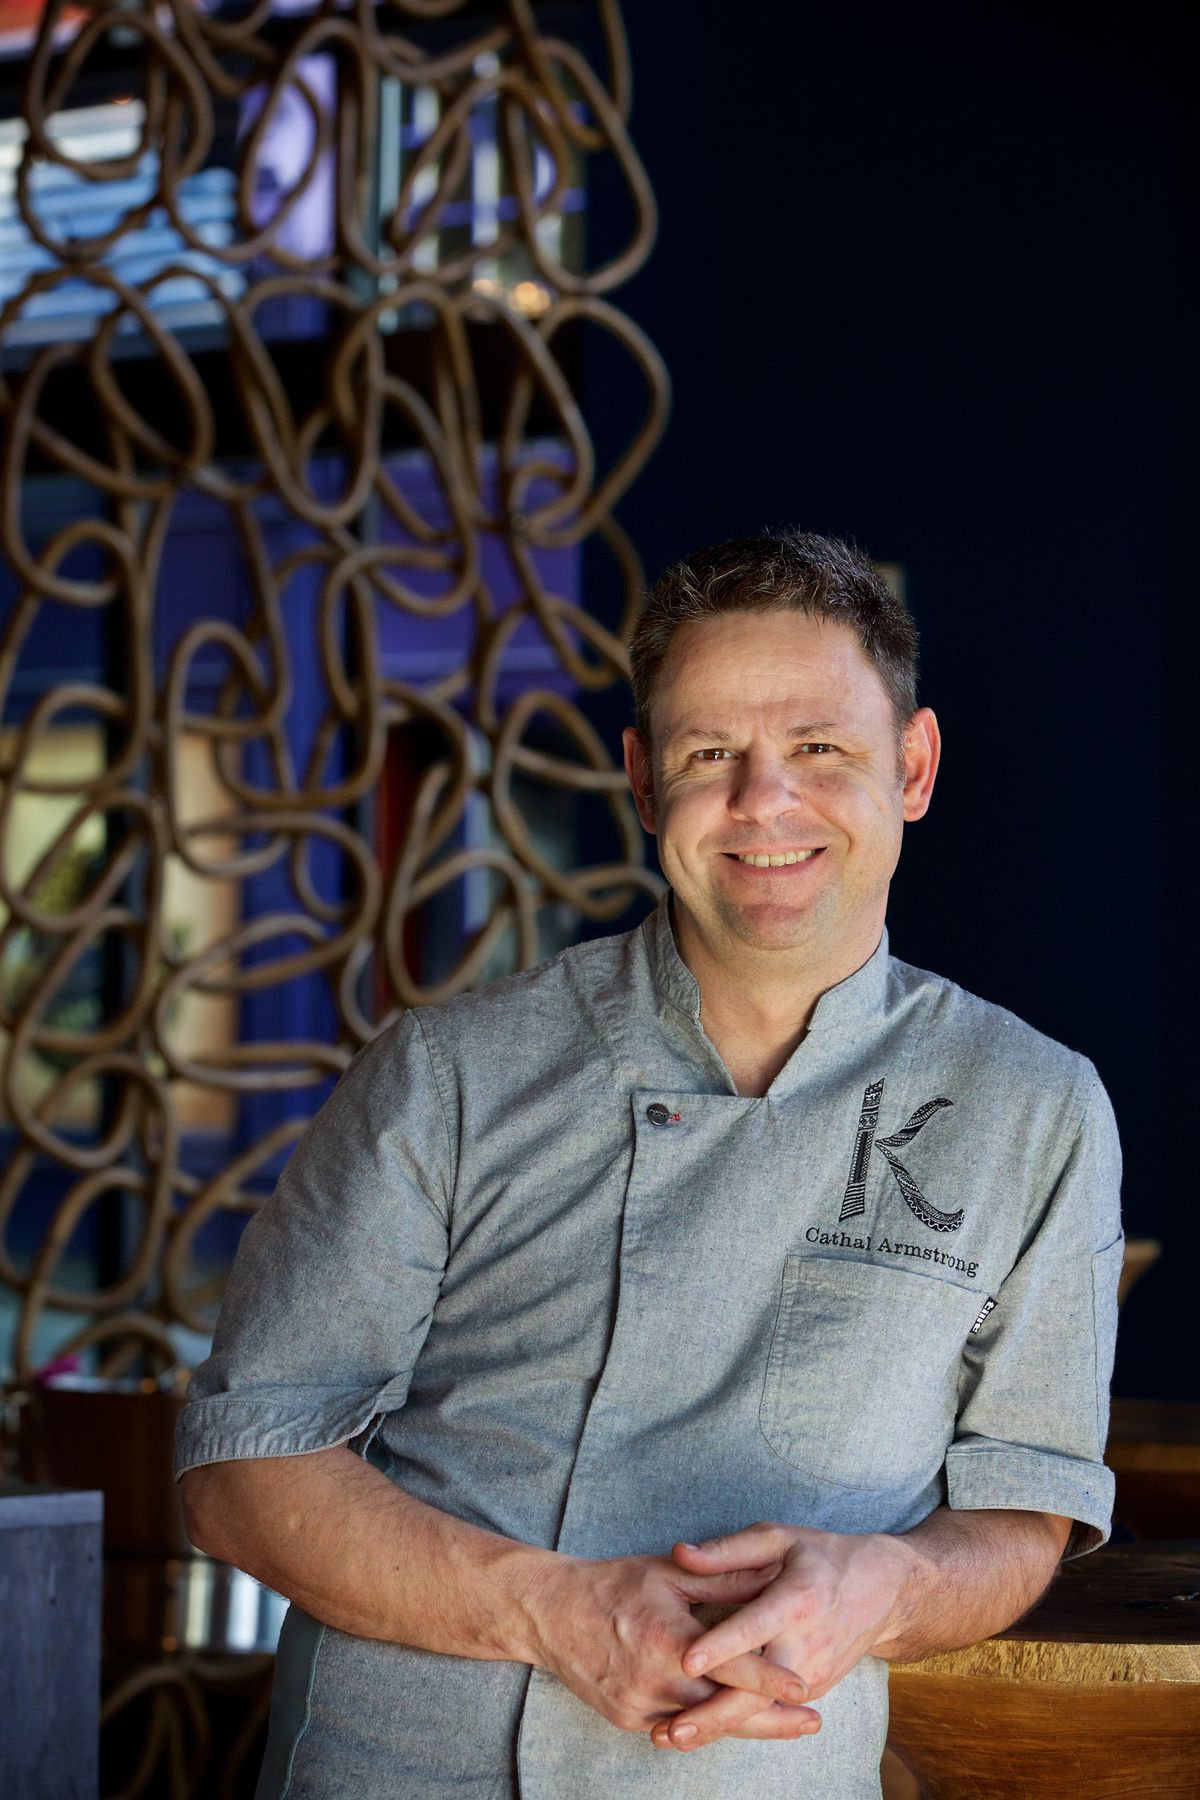 A portrait of Kaliwa owner Cathal Armstrong